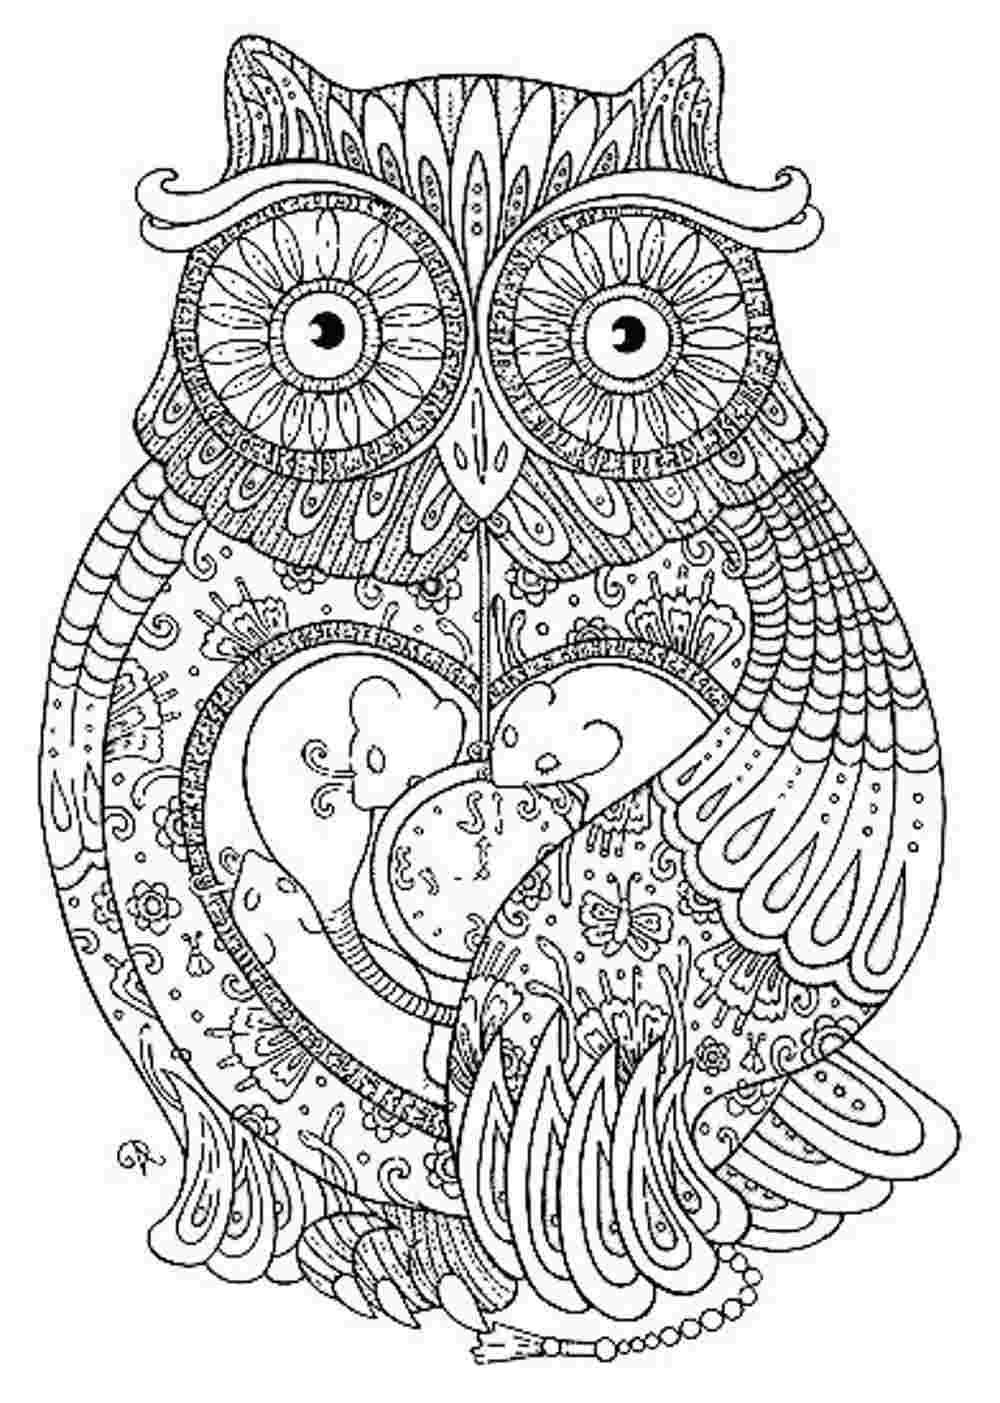 paisley pattern elephant Google Search Colouring Pages